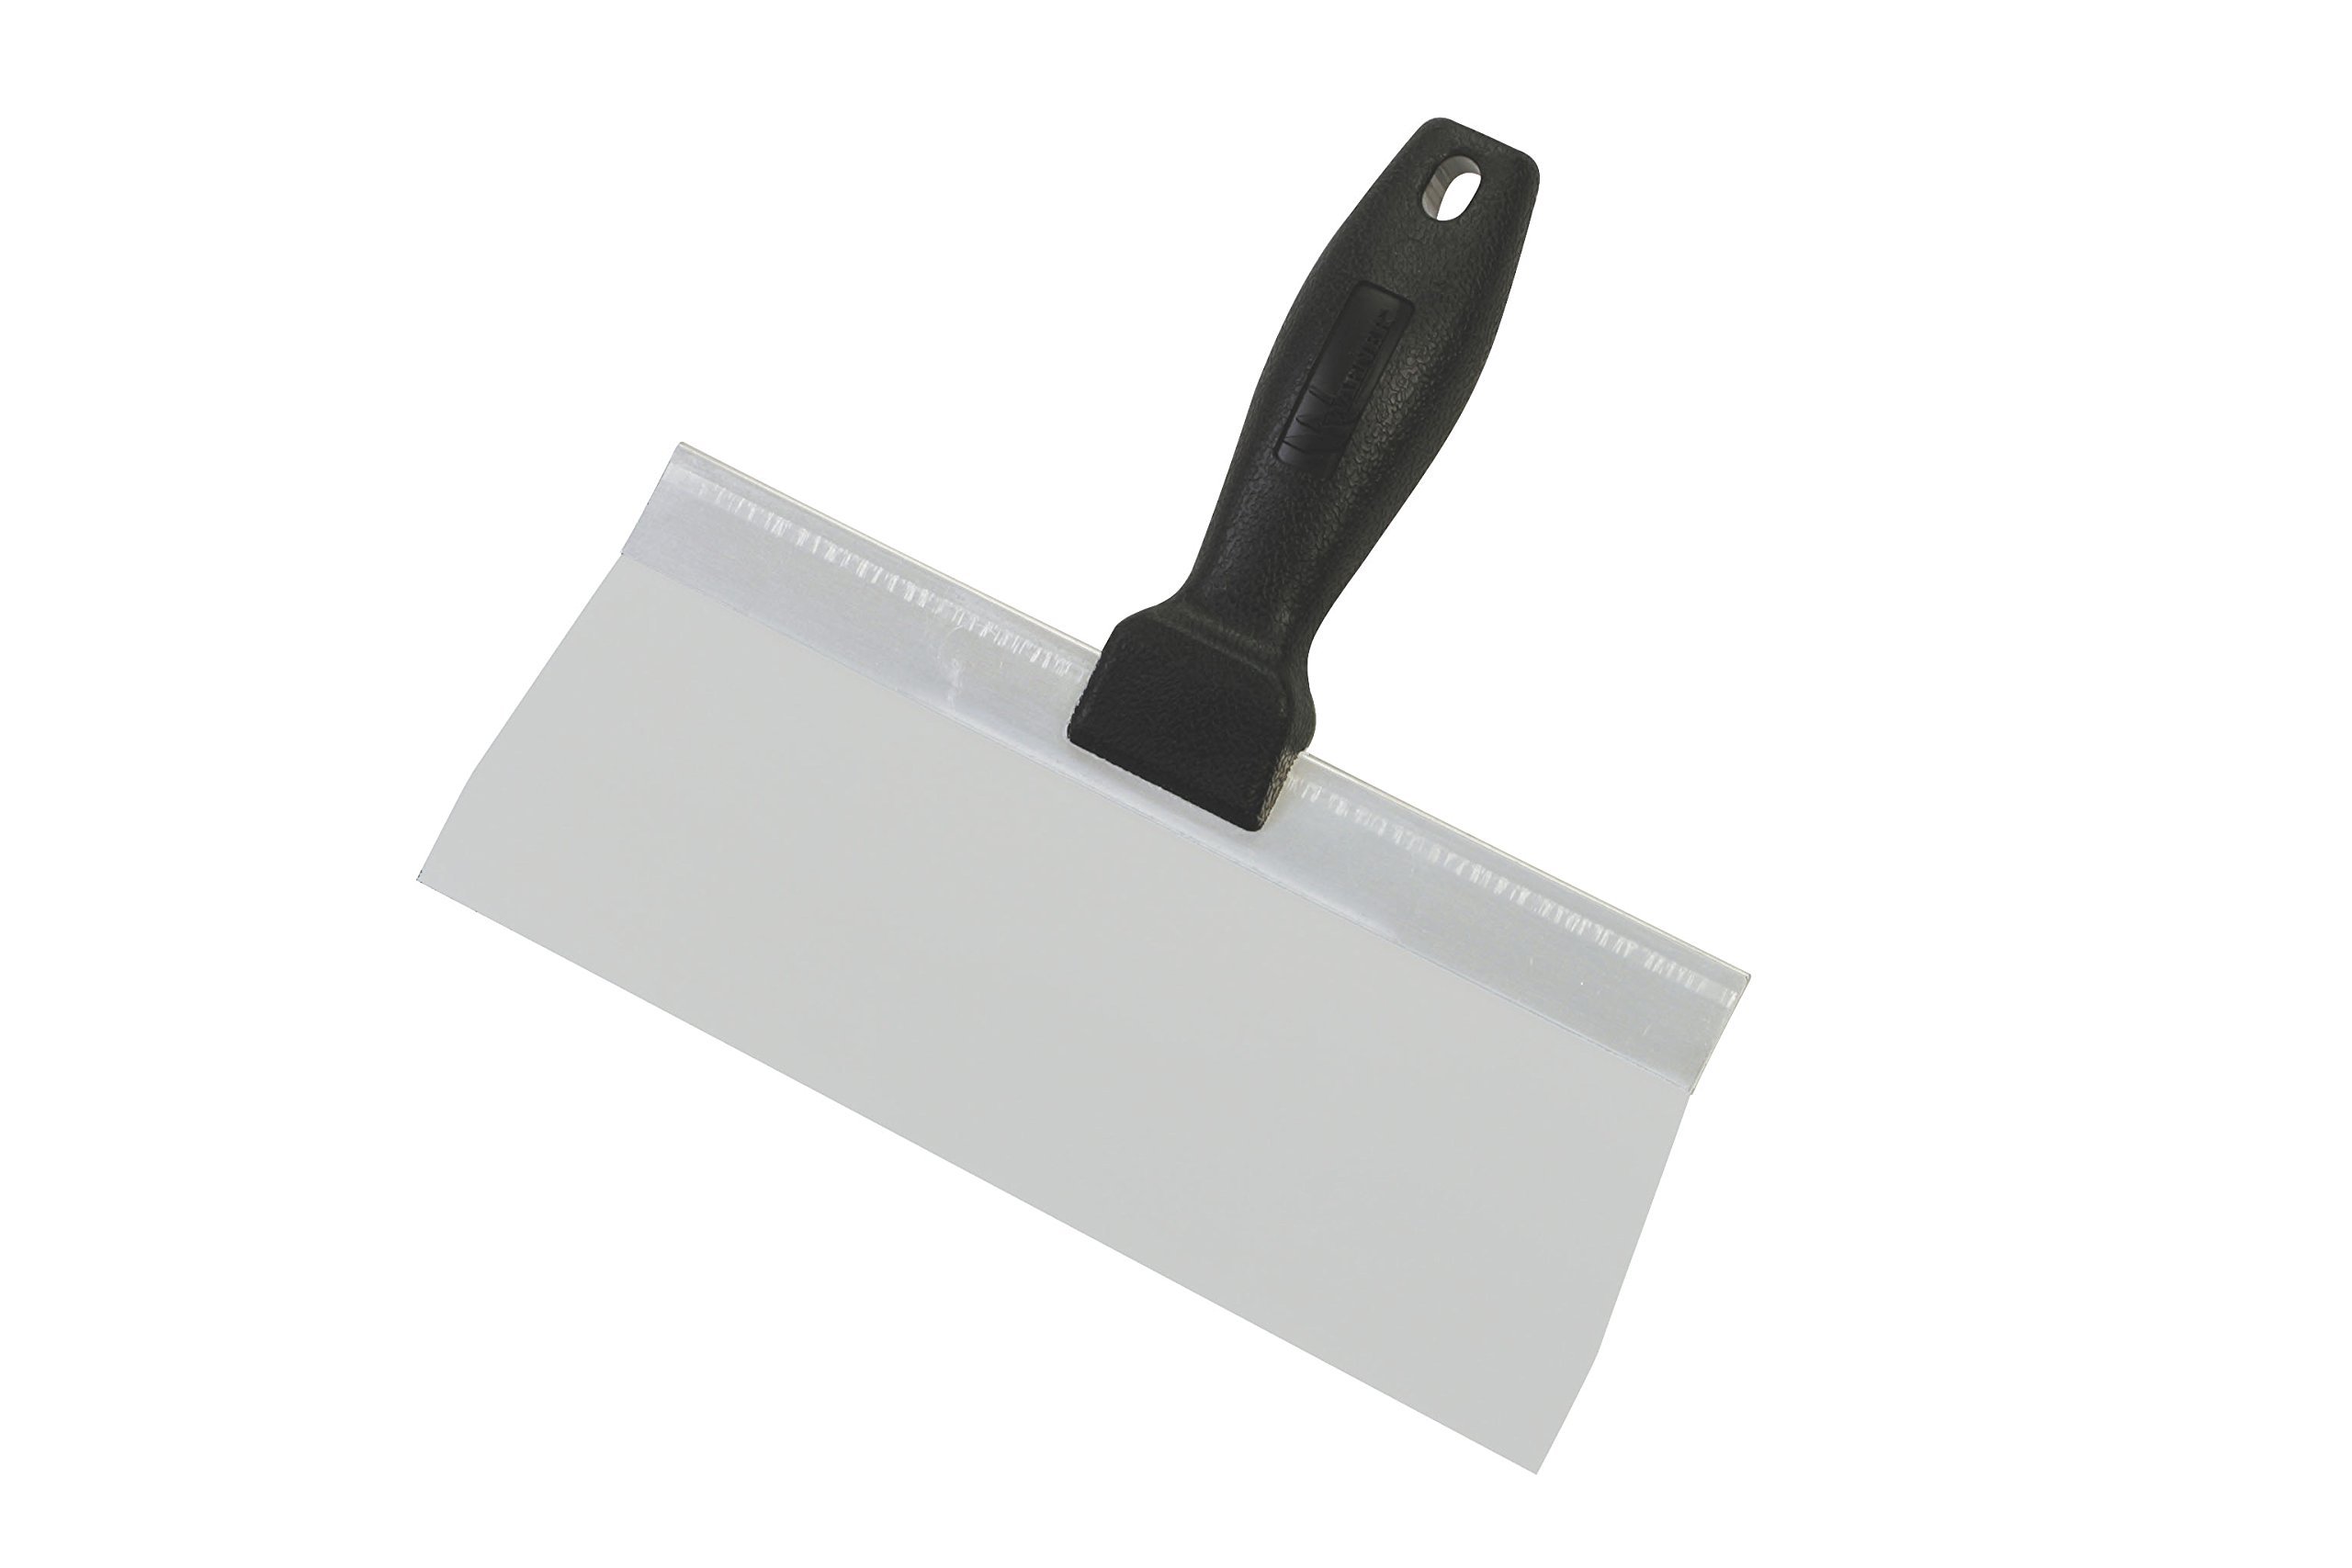 Warner 10'' Stainless Steel Drywall Taping Knife with Plastic Handle, 760